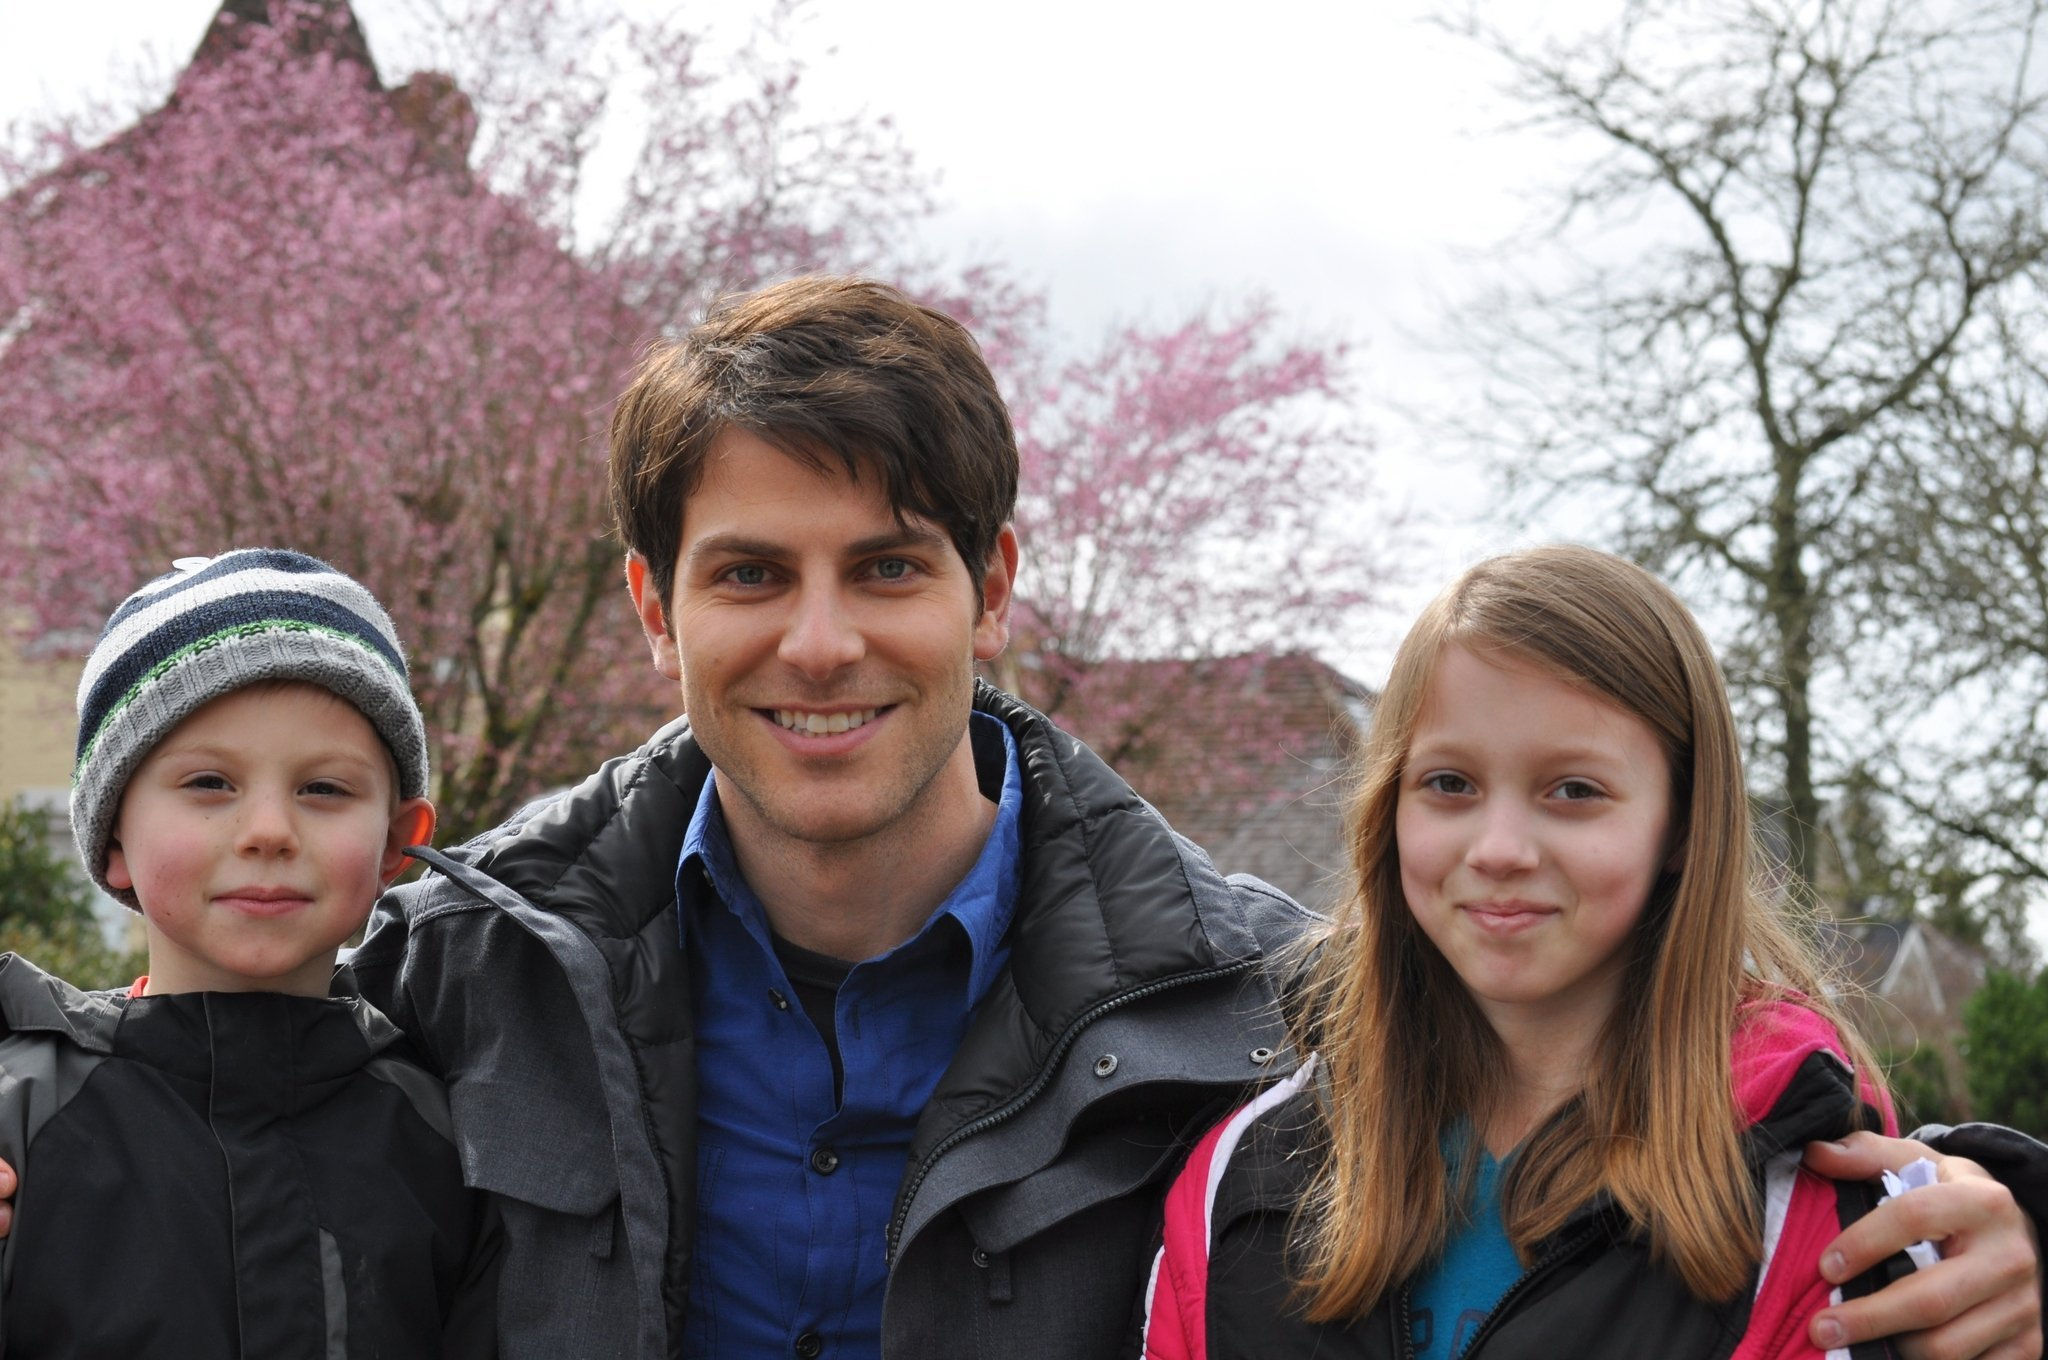 actor who plays watch grimm on nbcGrimm films at West Linn residence OregonLive qA0DIznt